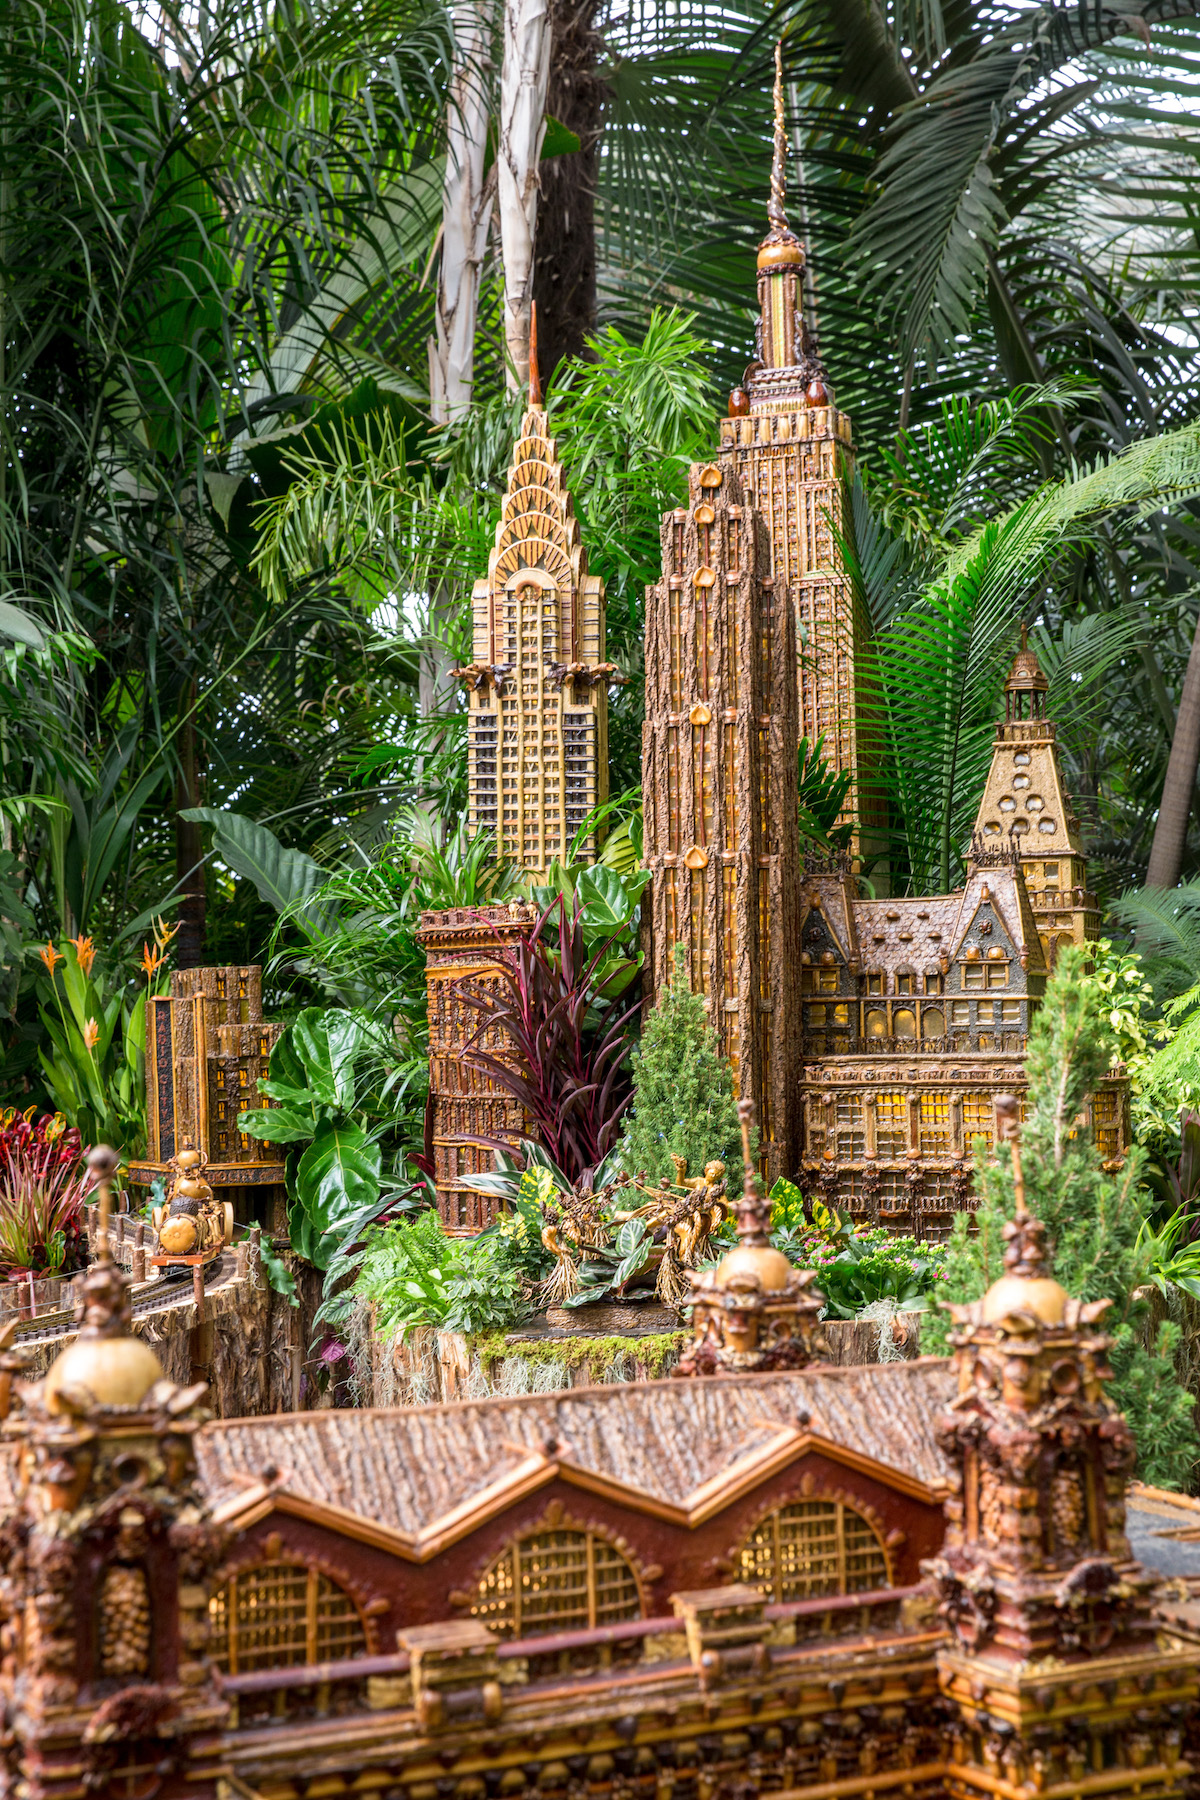 ... Stay At The Botanical Garden Until January 15, 2018. Ticket Prices Vary  Depending On Age And Day Of The Week, So Check Out NYGBu0027s Train Show  Website For ...